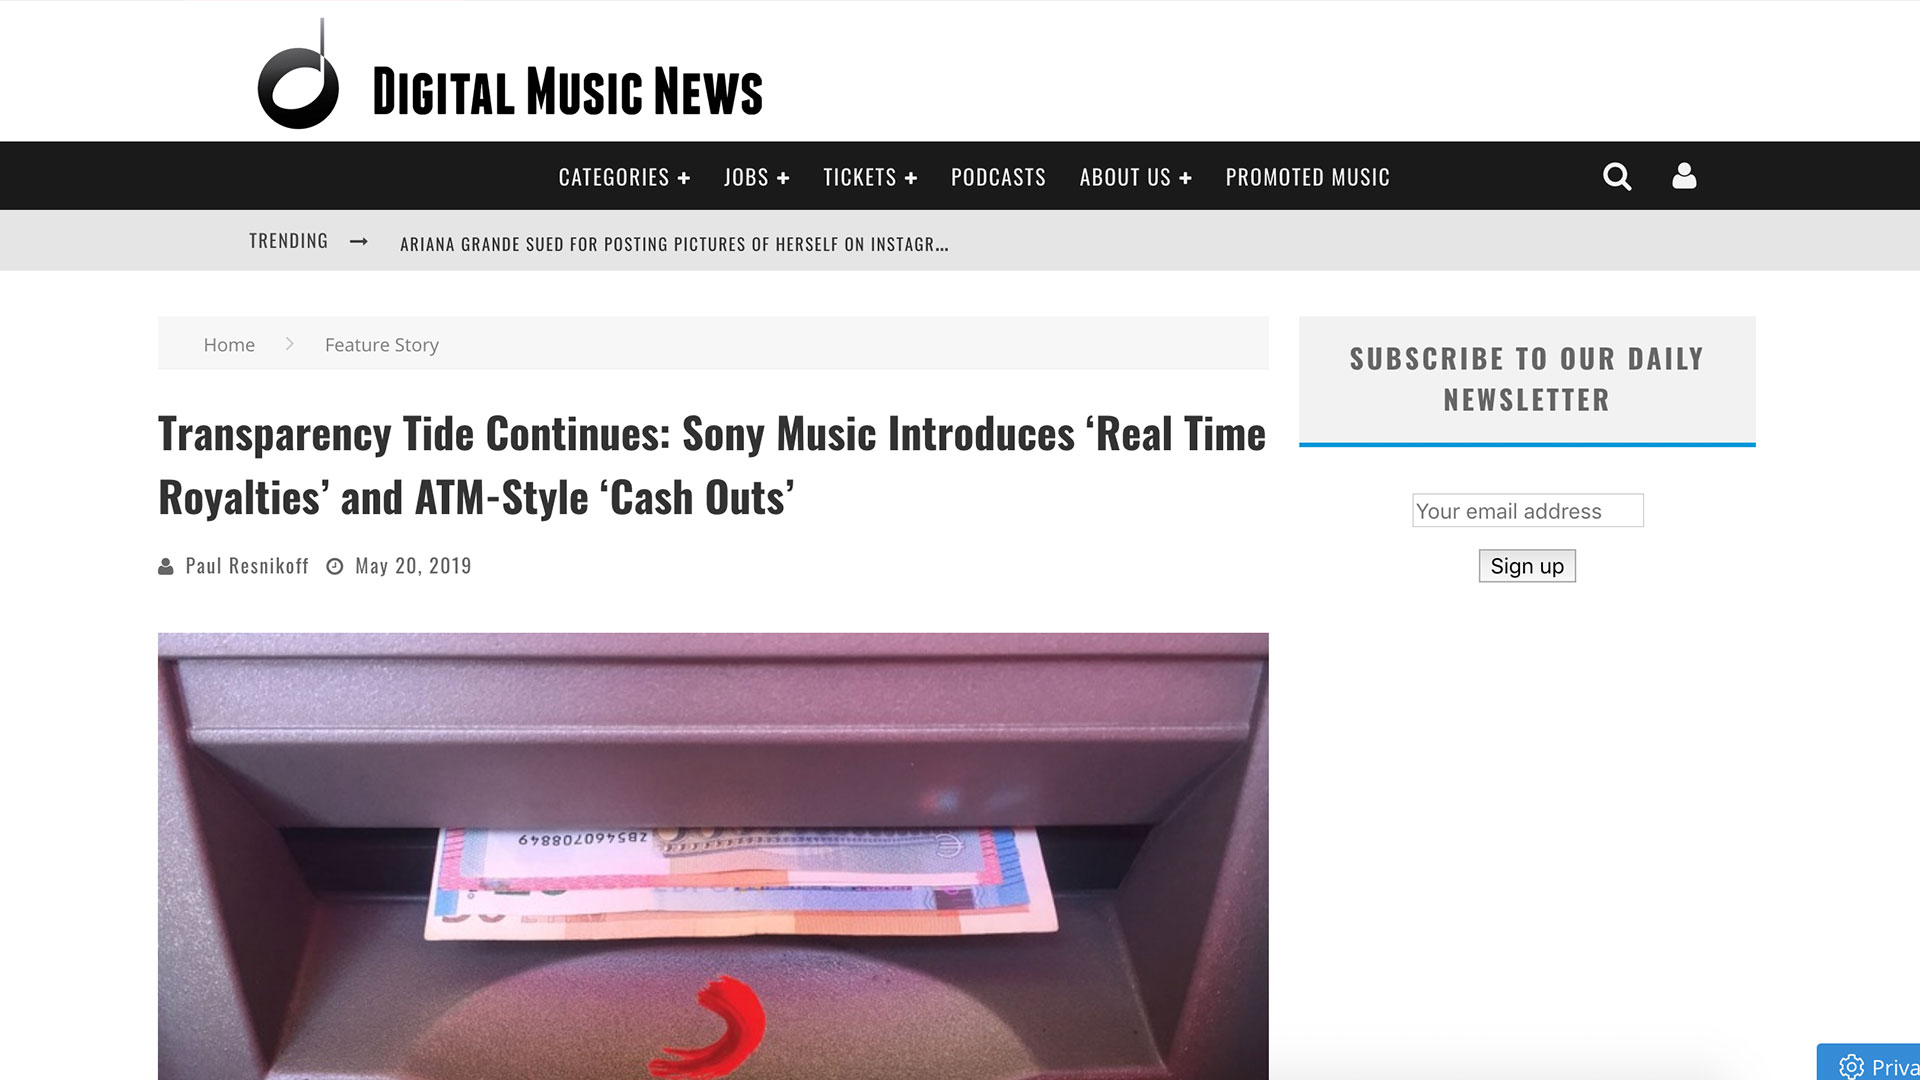 Fairness Rocks News Transparency Tide Continues: Sony Music Introduces 'Real Time Royalties' and ATM-Style 'Cash Outs'